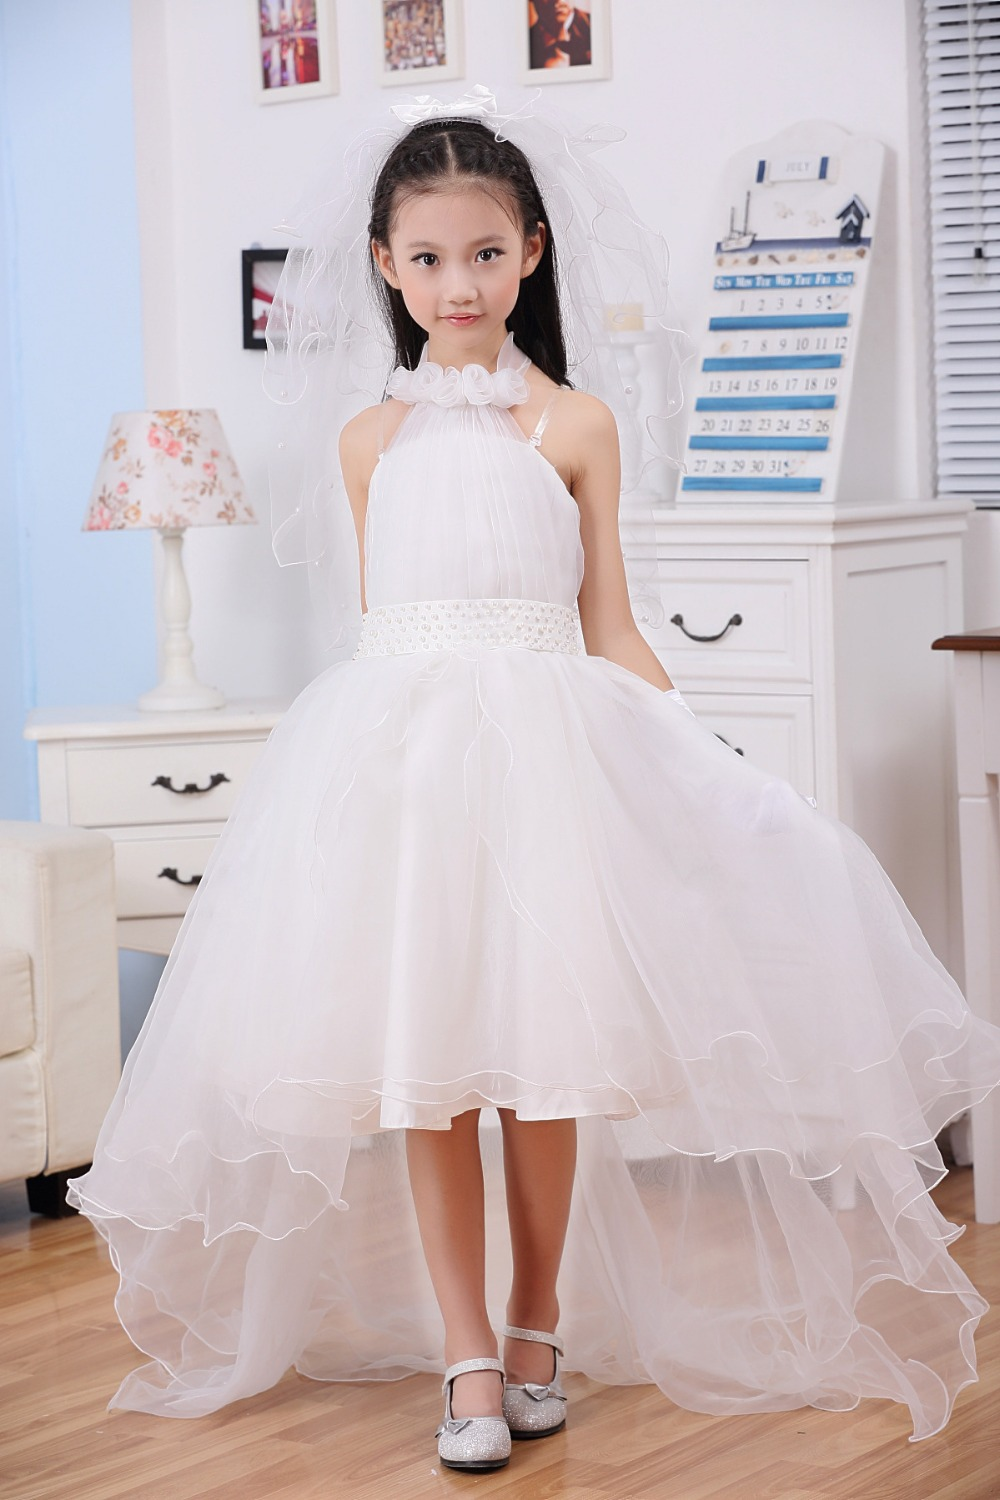 White Dresses For Kids - Dress Xy